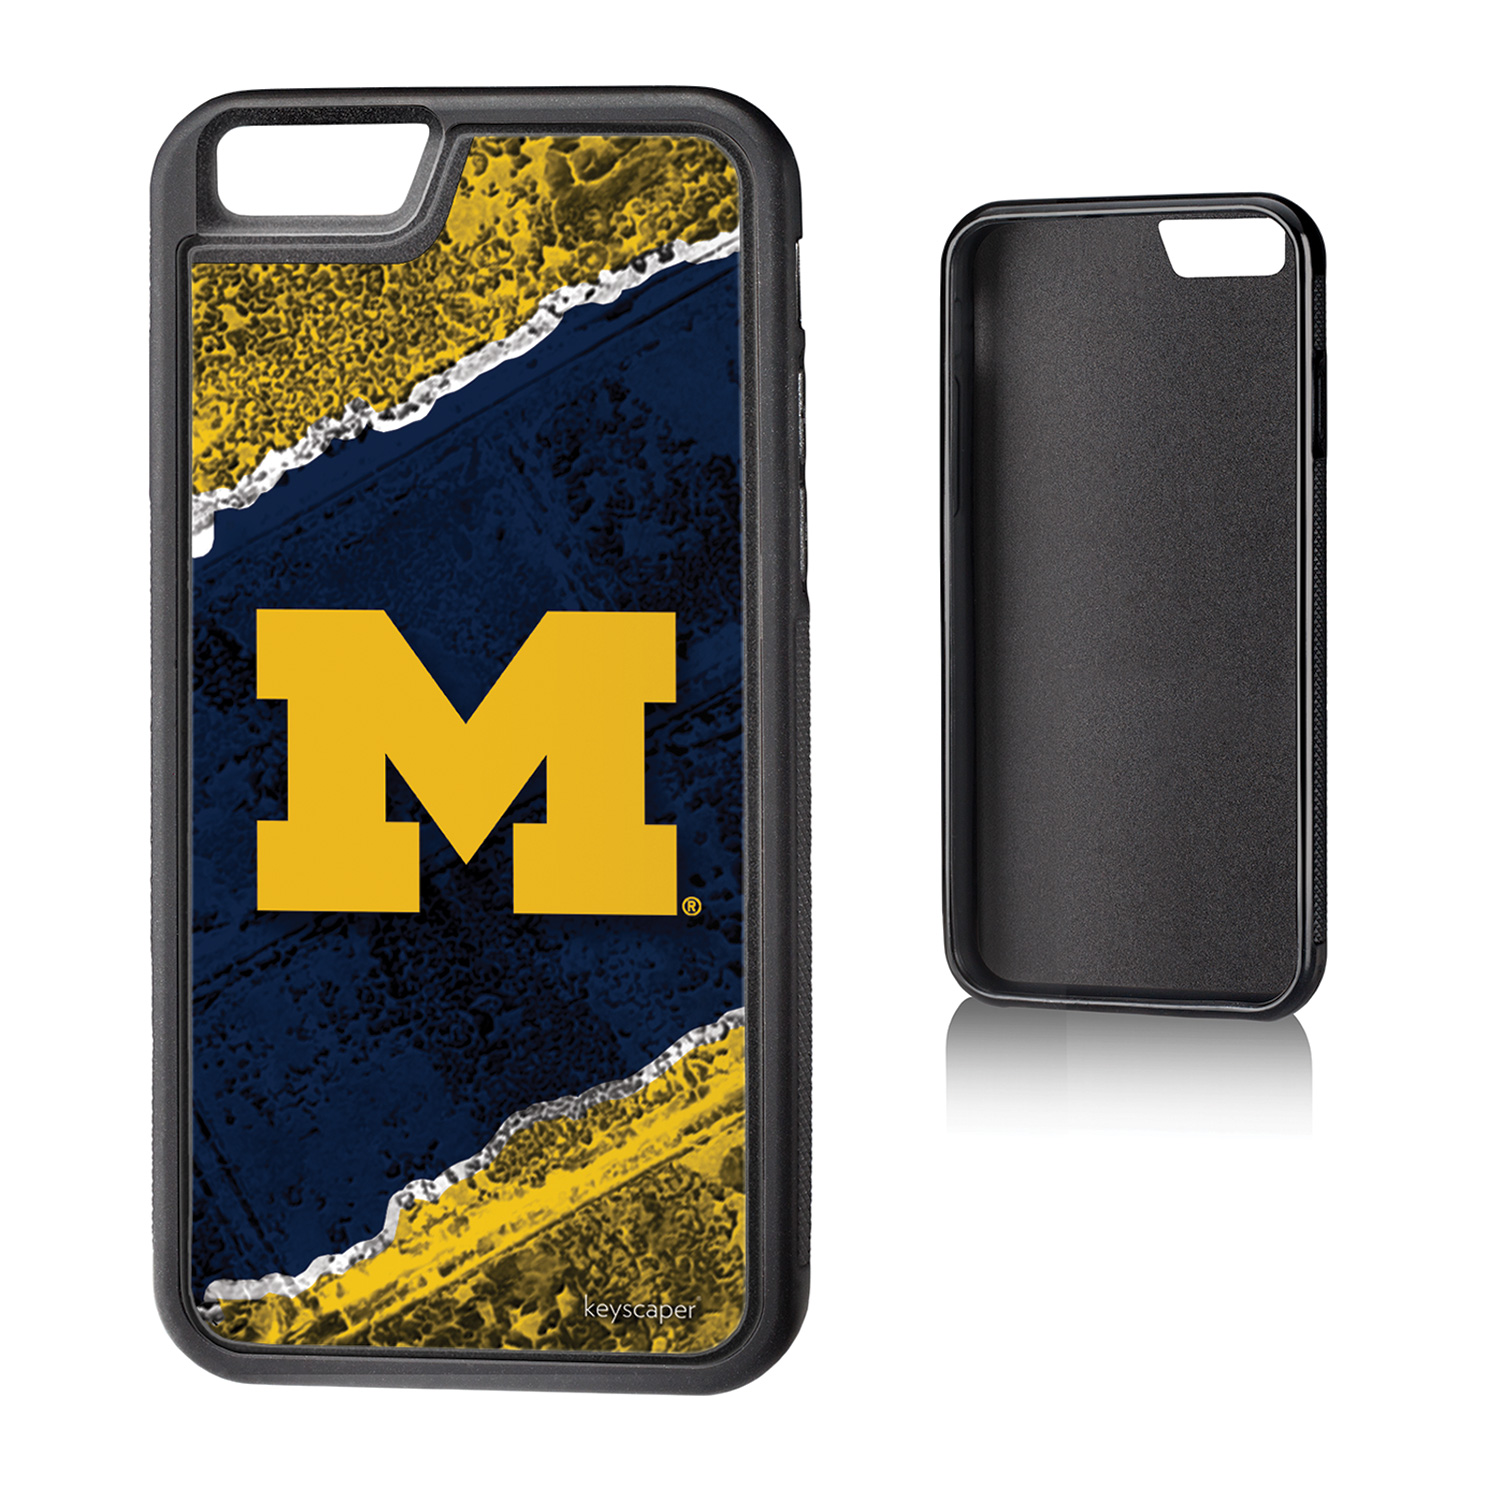 Michigan Wolverines iPhone 6 (4.7 inch) Bumper Case